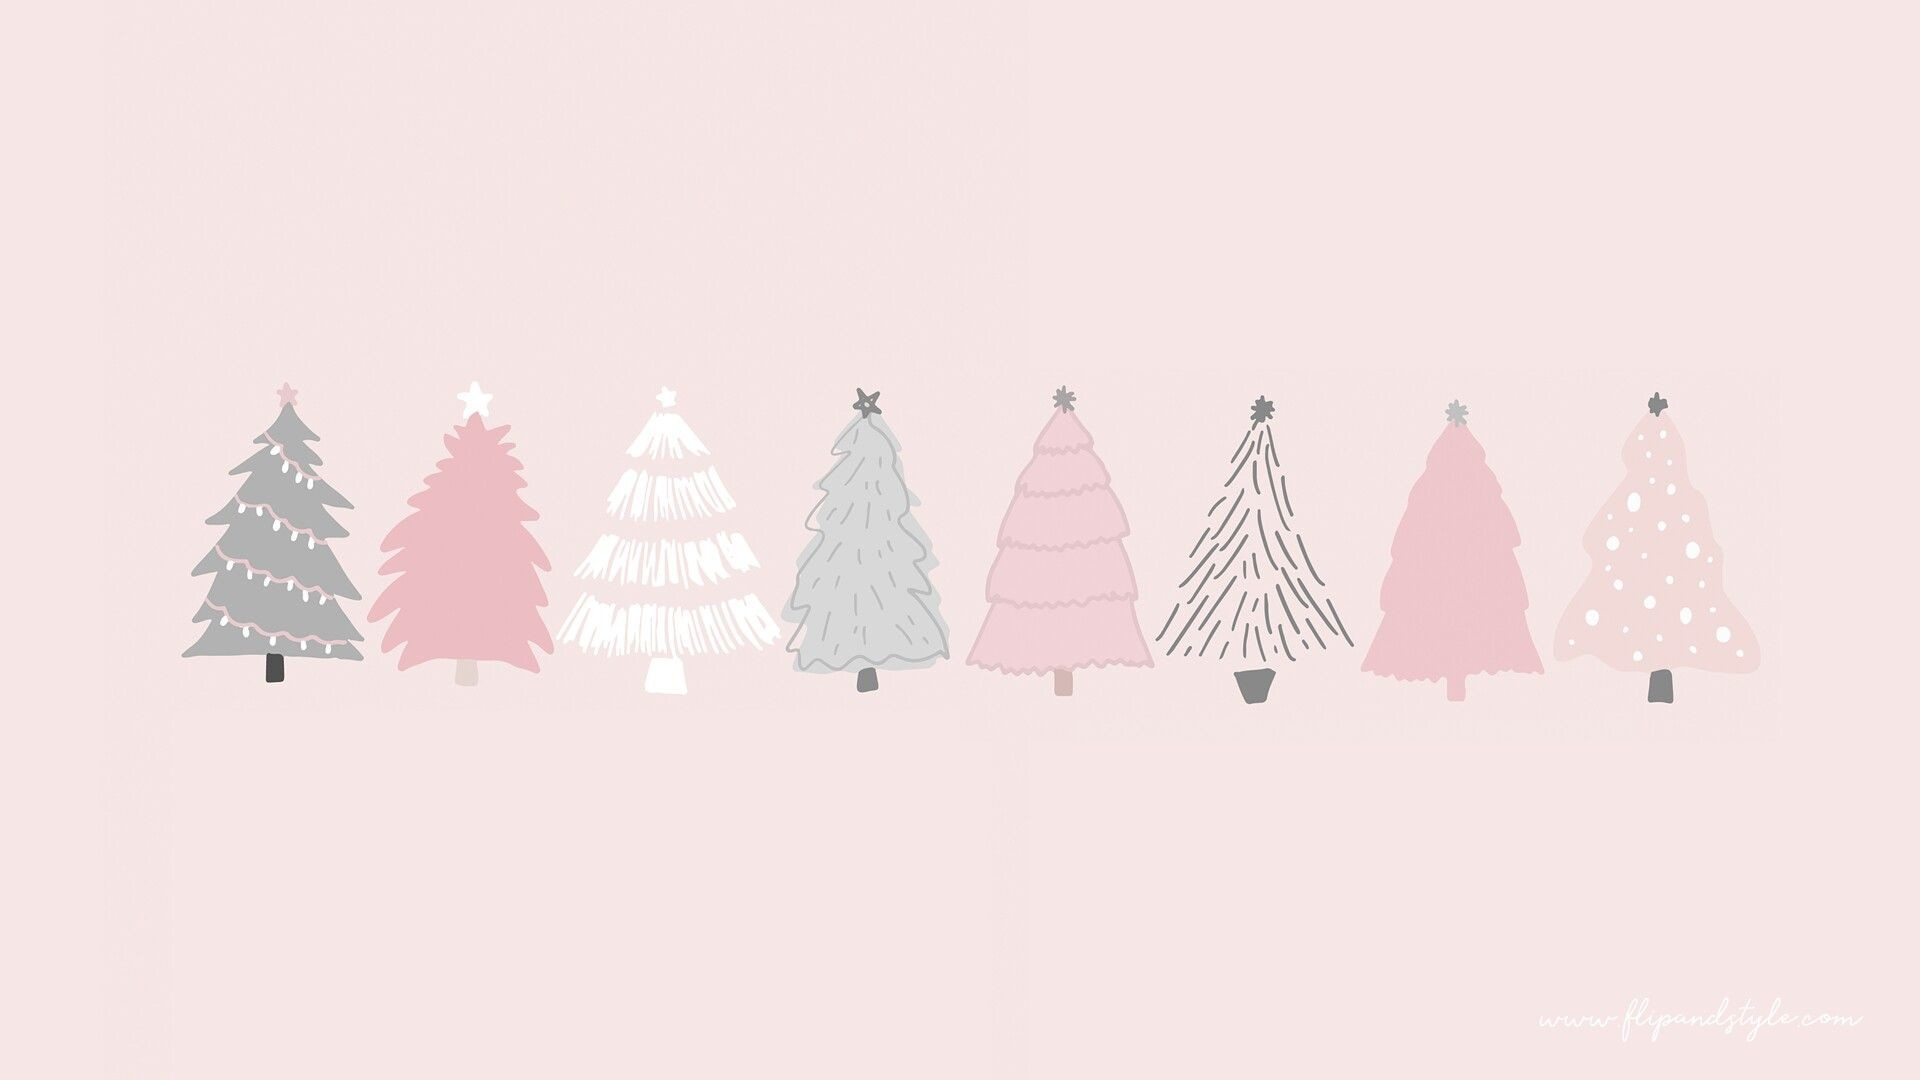 1920x1080 ~@oliviakwilsonn~ Mac Wallpaper Desktop, Christmas Desktop Wallpaper, Free Wallpaper  Backgrounds,